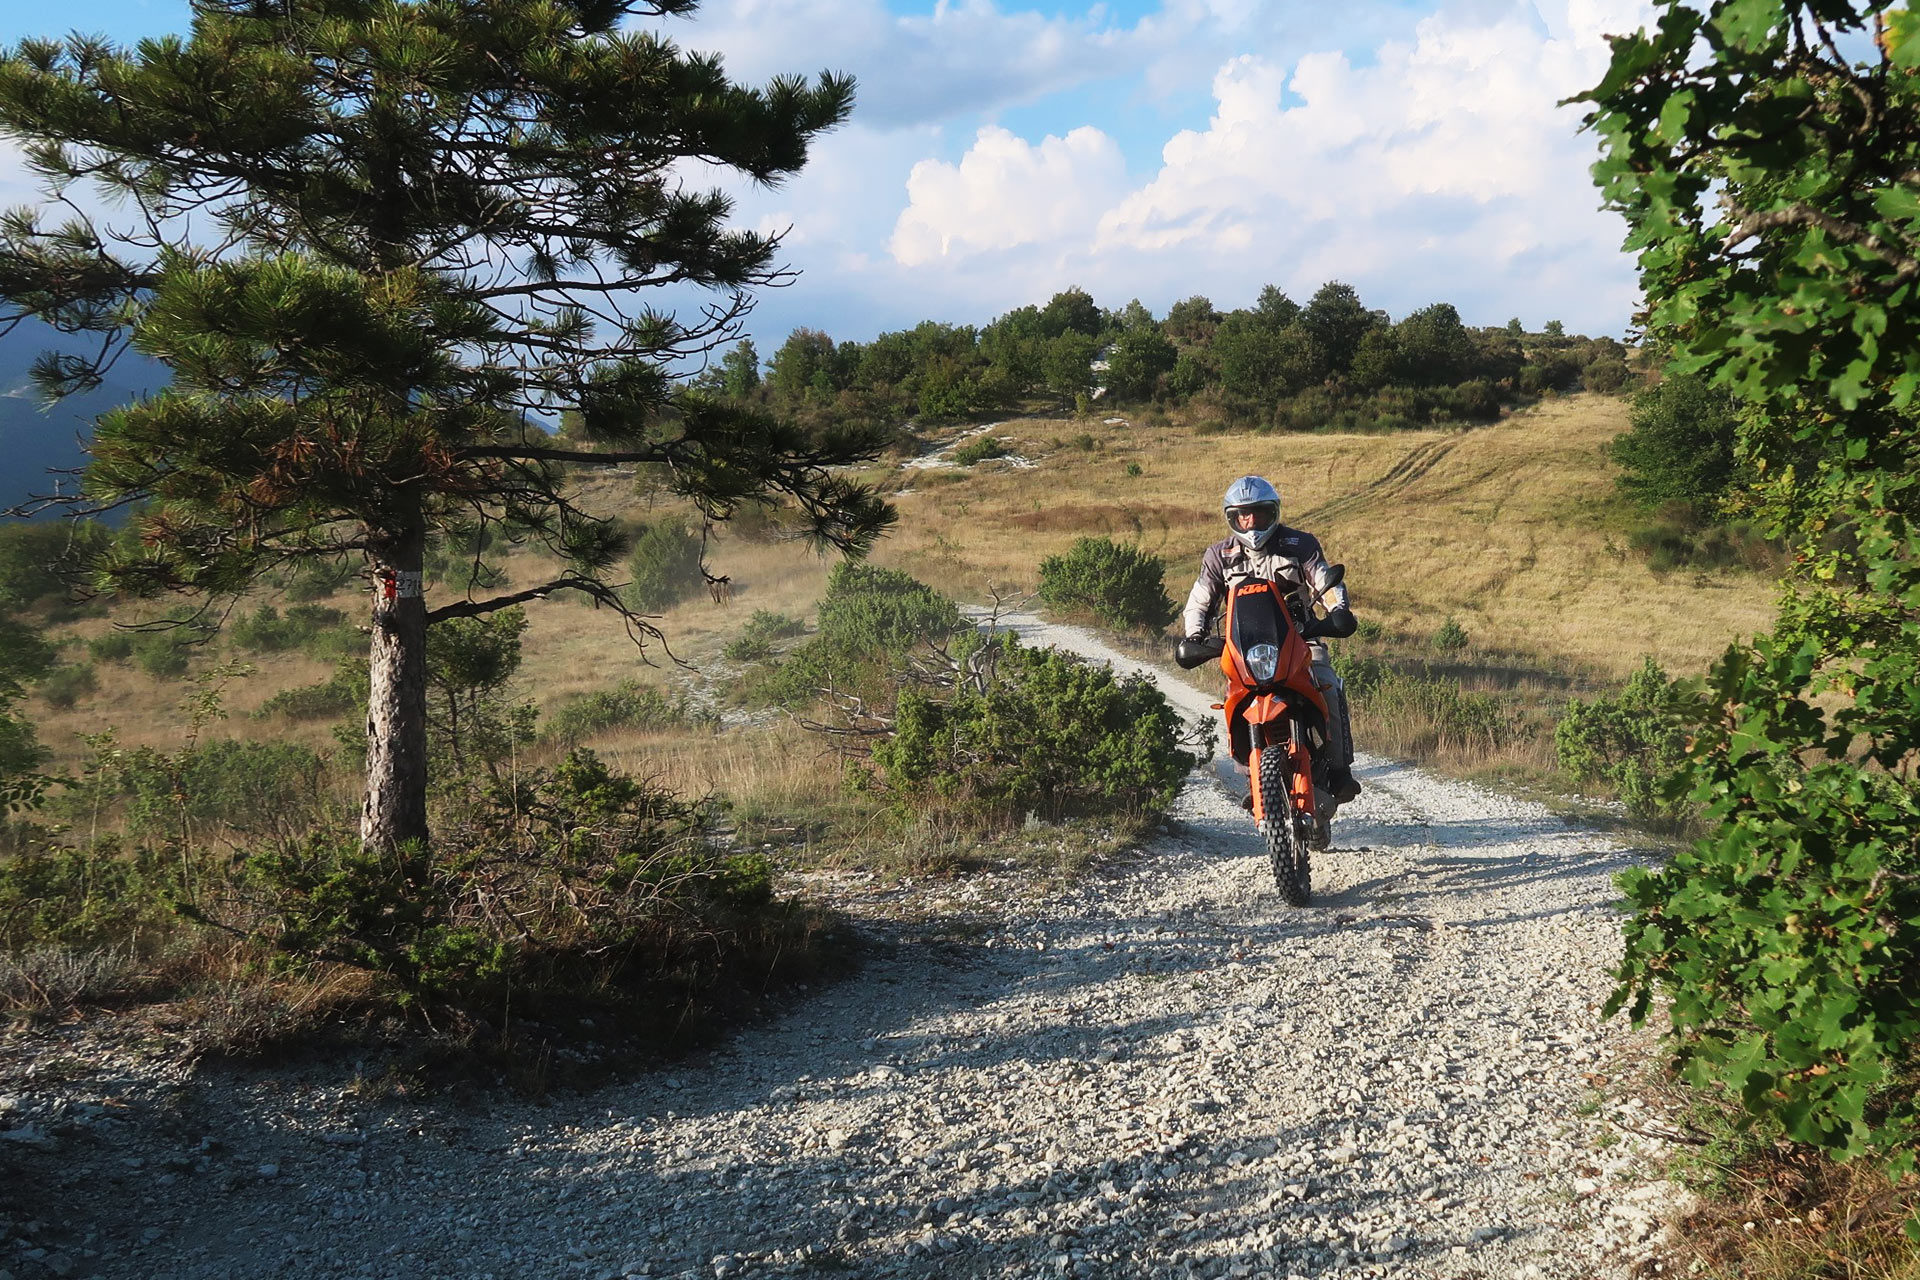 queen trophy moto umbria 2019